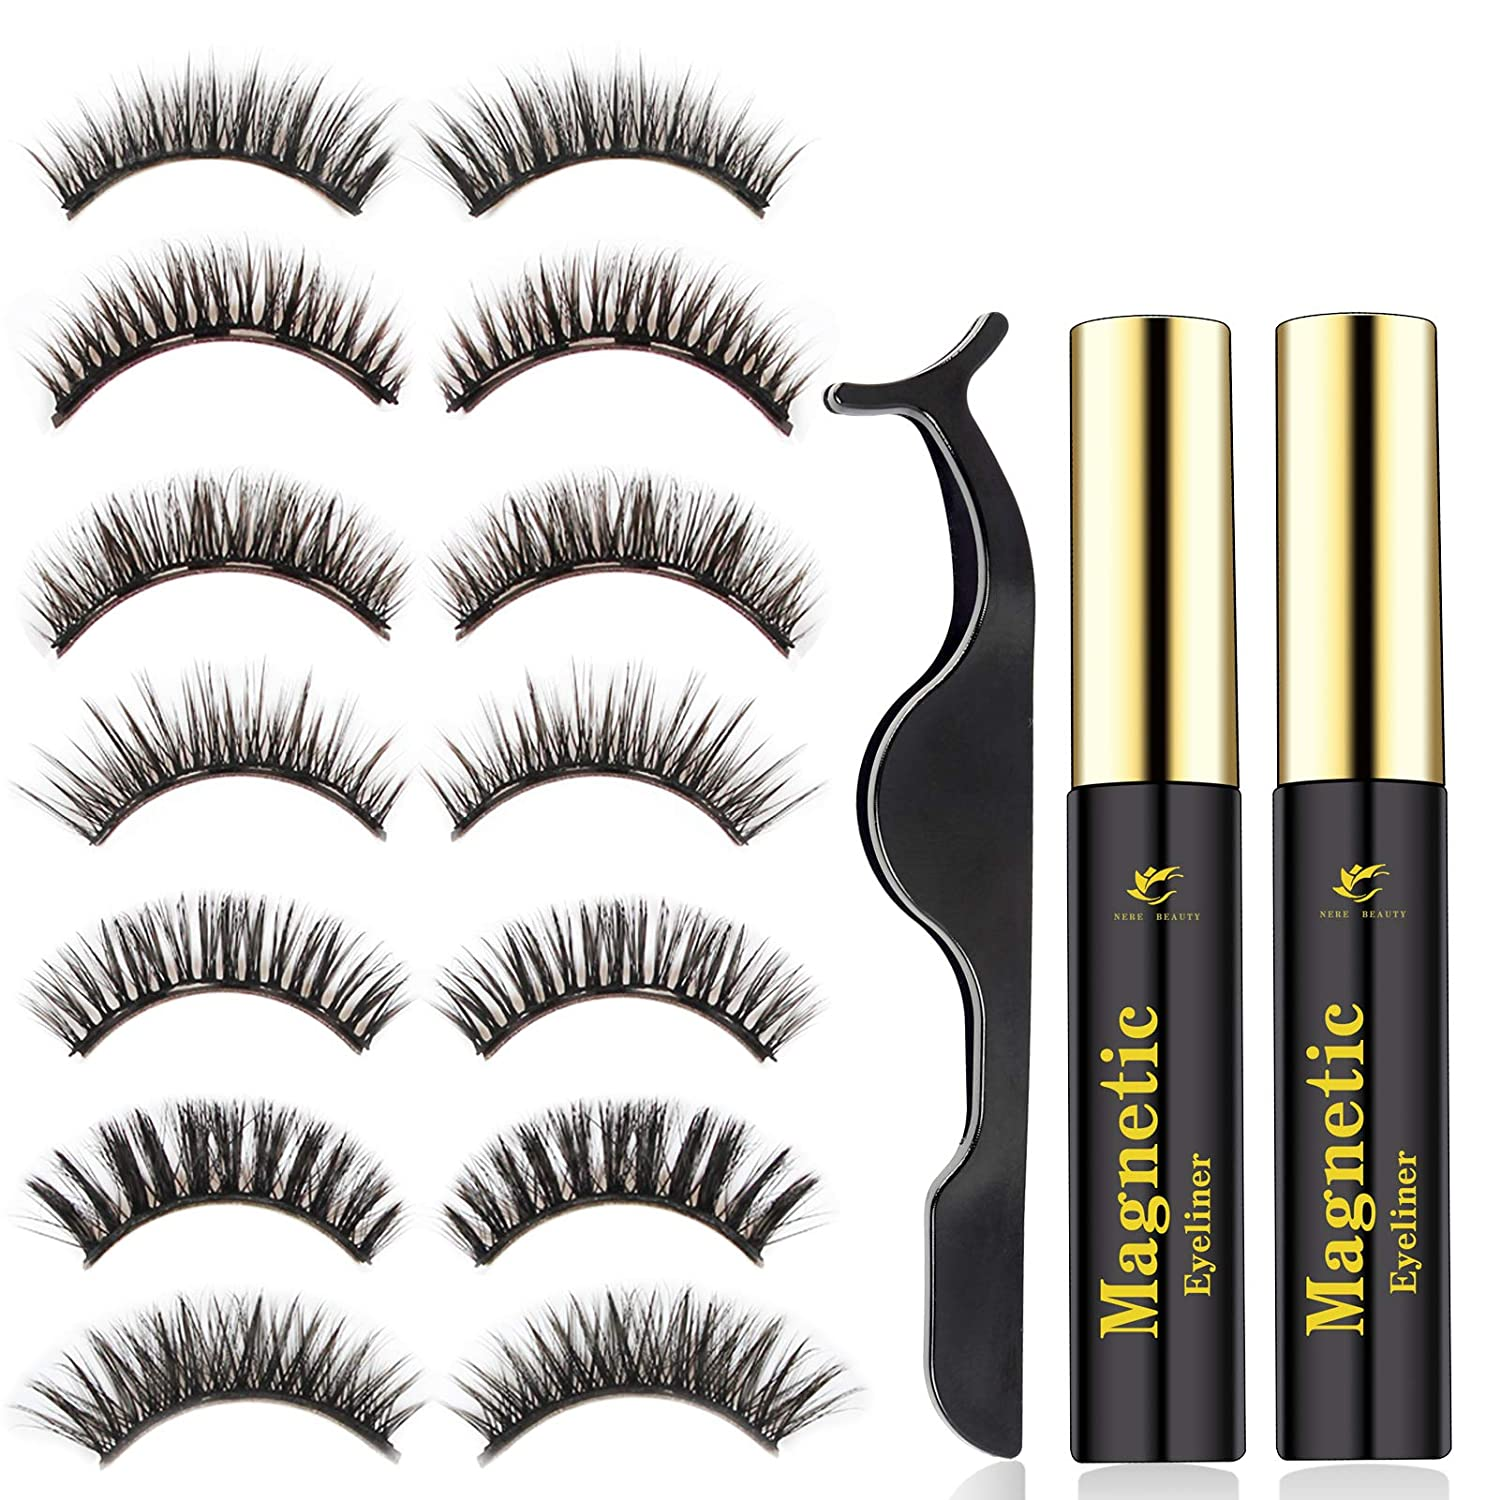 2020 Upgraded Magnetic Eyelashes and Magnetic Eyeliner Kit, Premium Magnetic Eyelashes with Tweezer, Hebe Natural and Volume Reusable False Lashes 7 pairs NERE BEAUTY